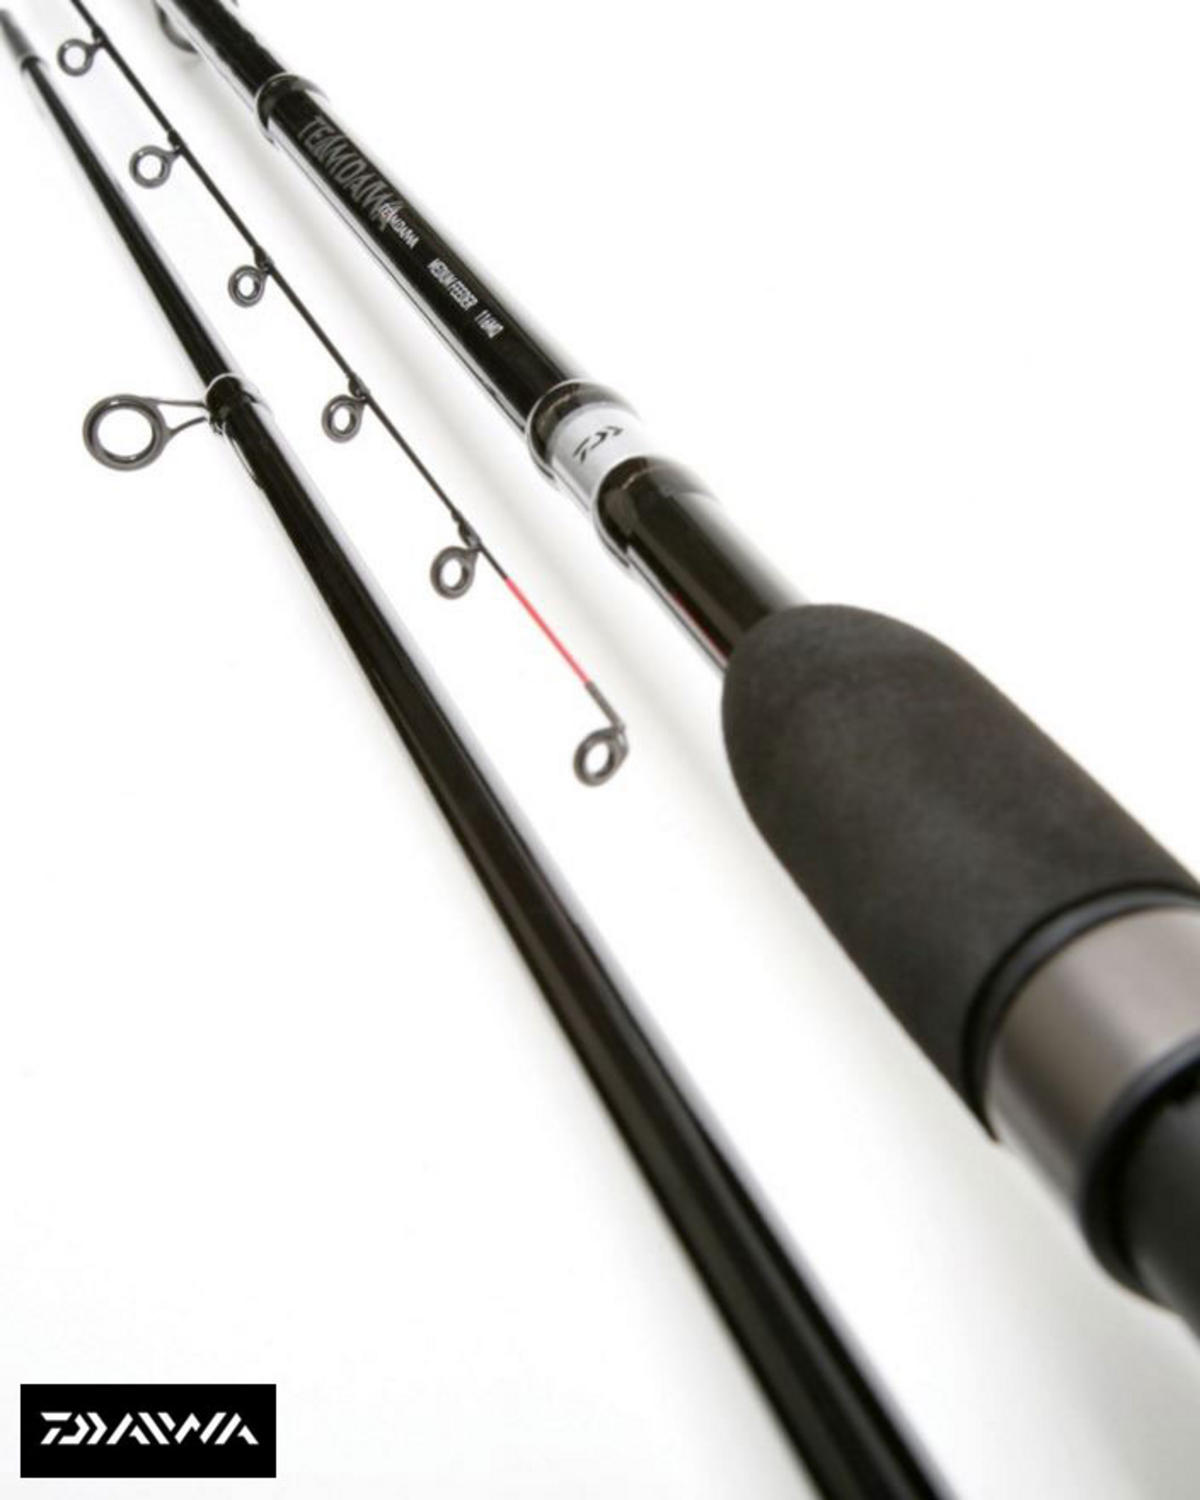 EX DISPLAY TEAM DAIWA FEEDER ROD 11' FEEDER MED QUIVER Model No. TDF11PMQ-AU